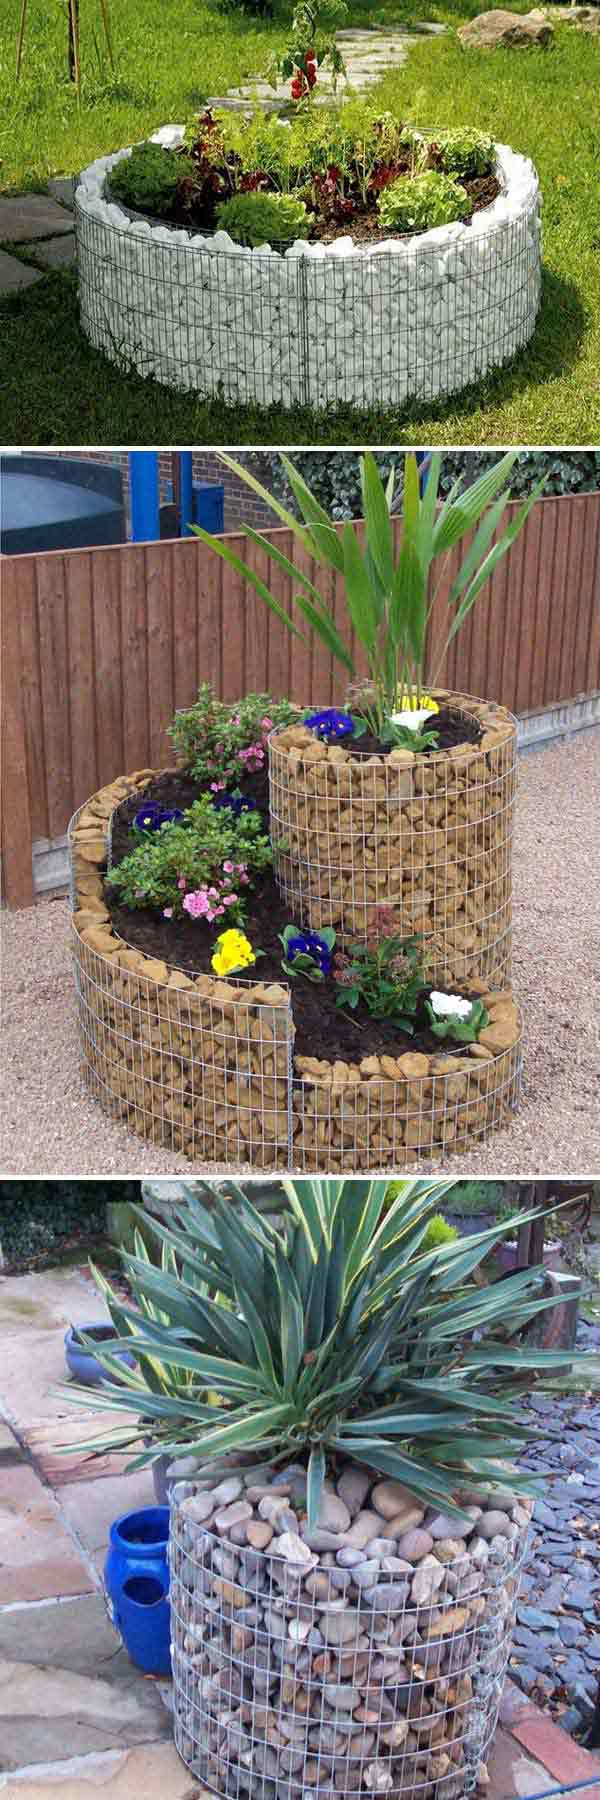 27 Best Gabion Ideas Amp Designs For Your Outdoor 2020